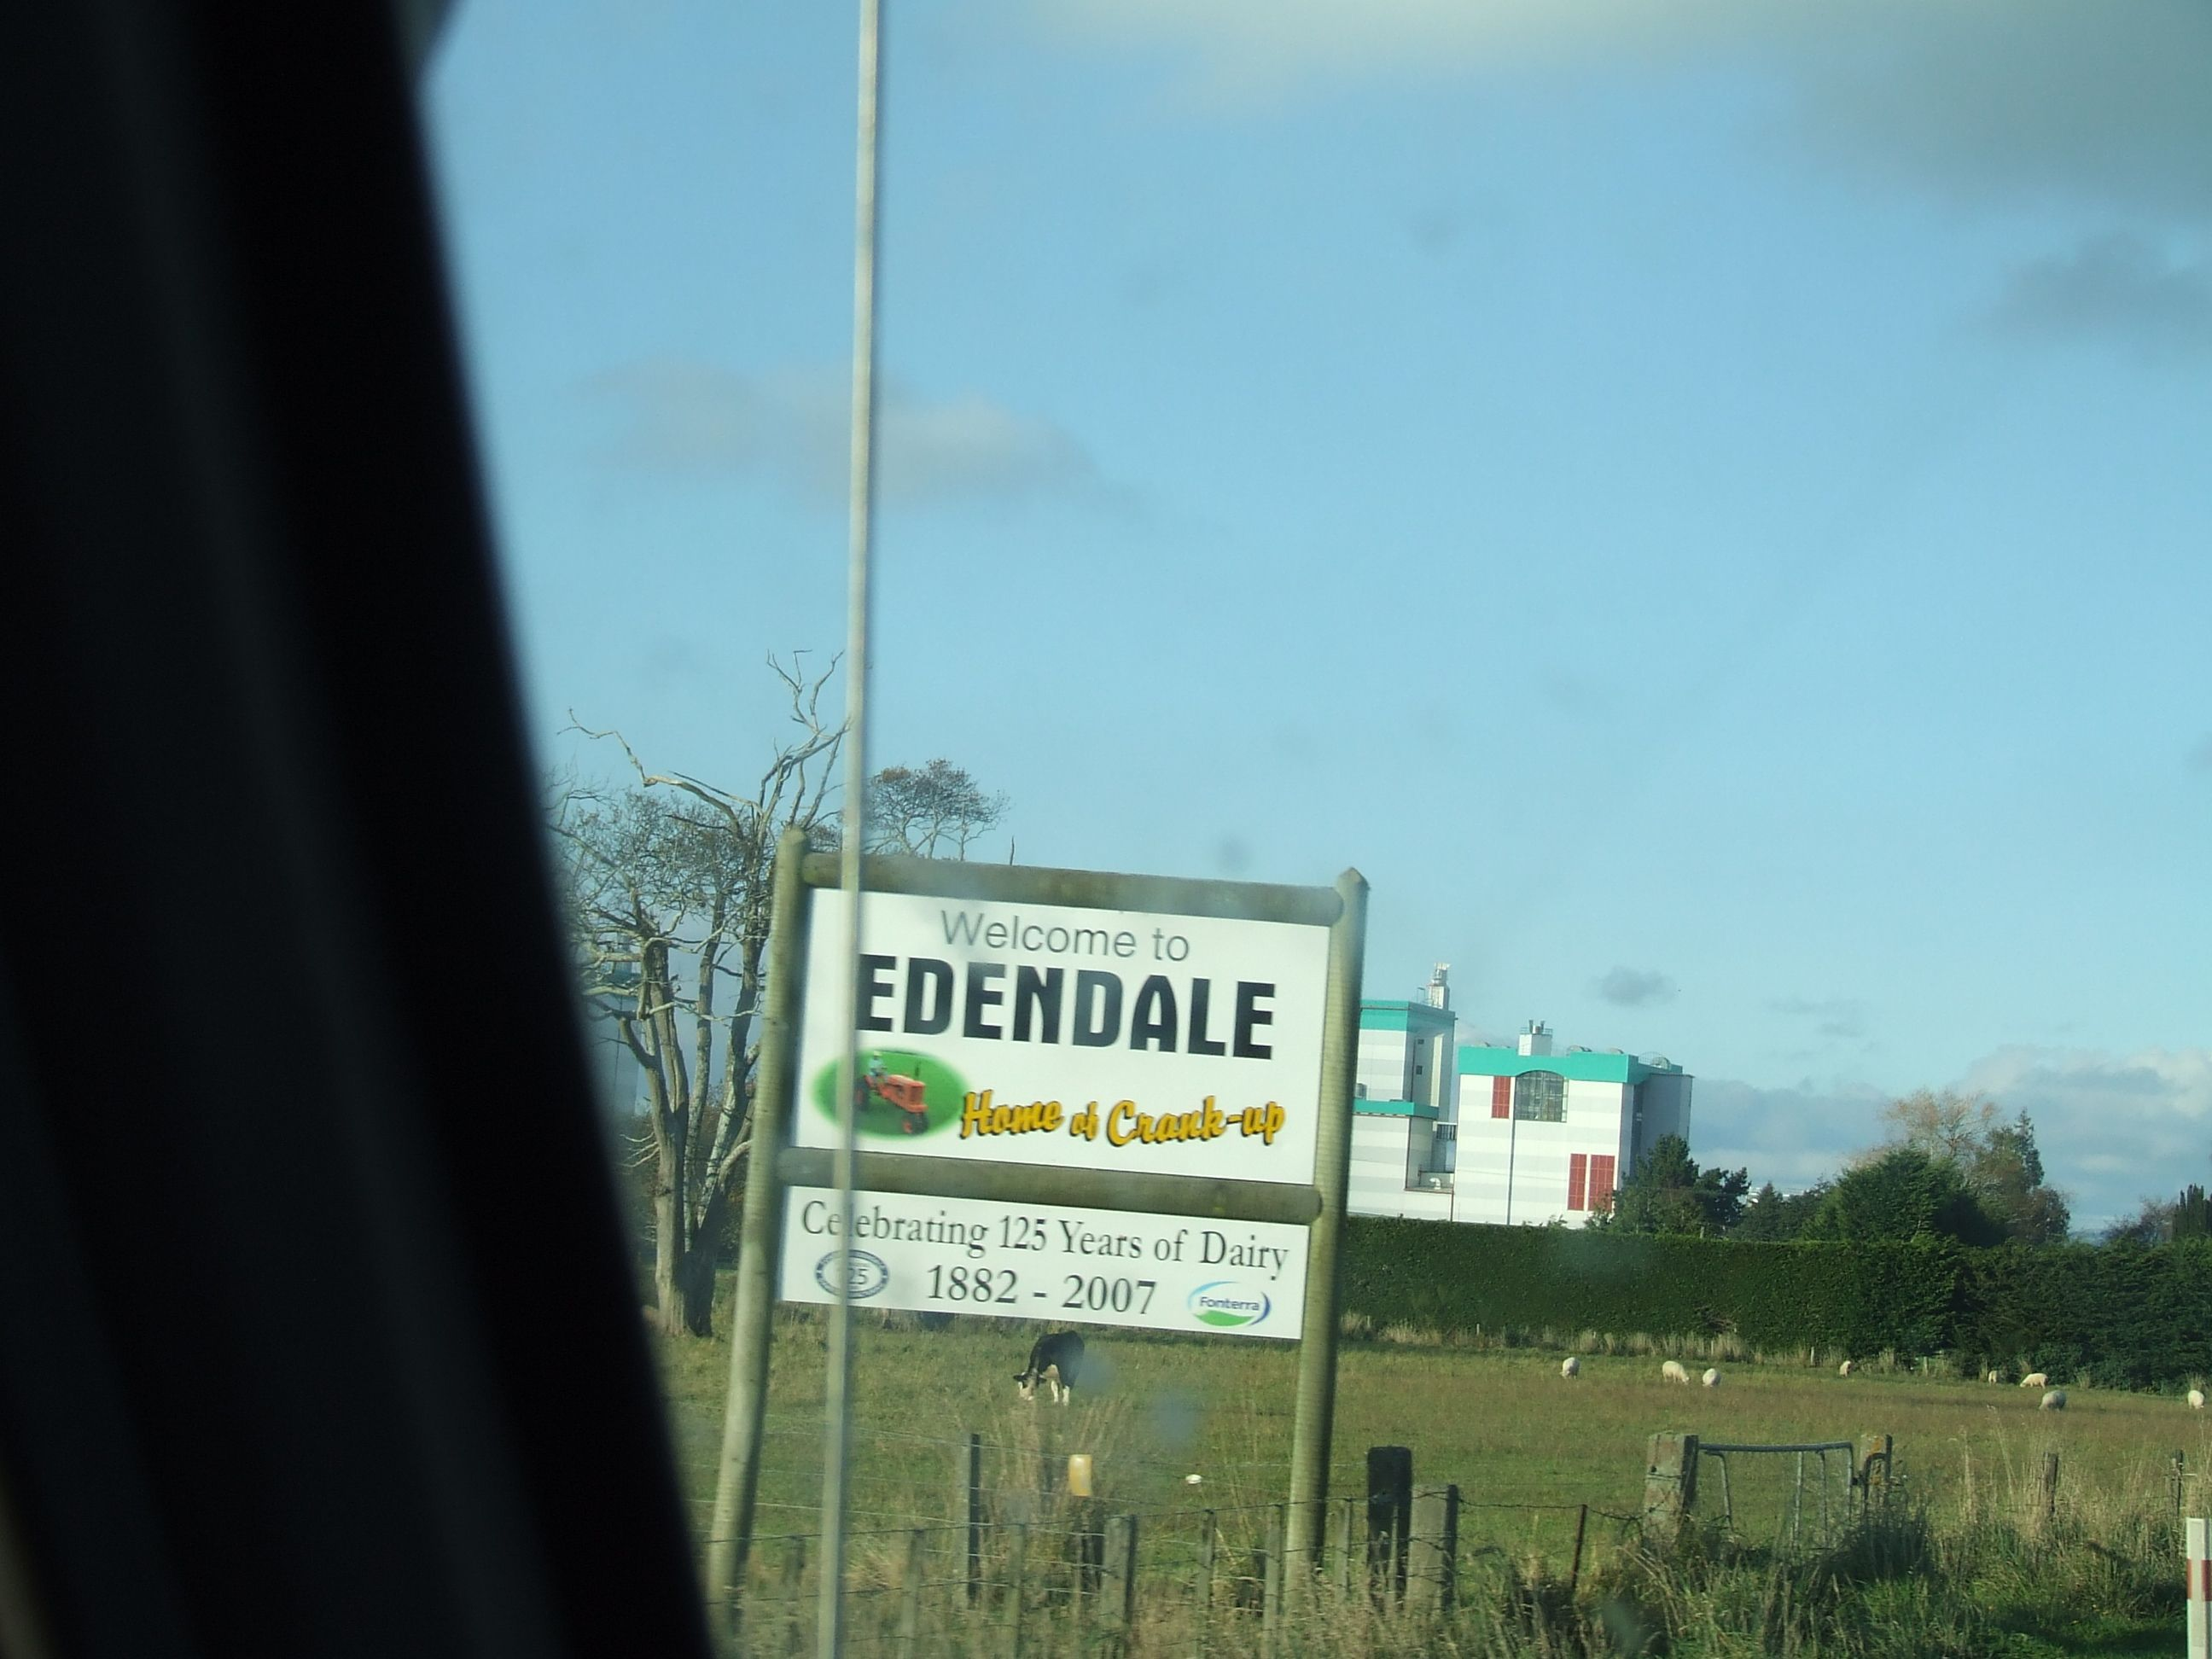 Edendale Sign, New Zealand